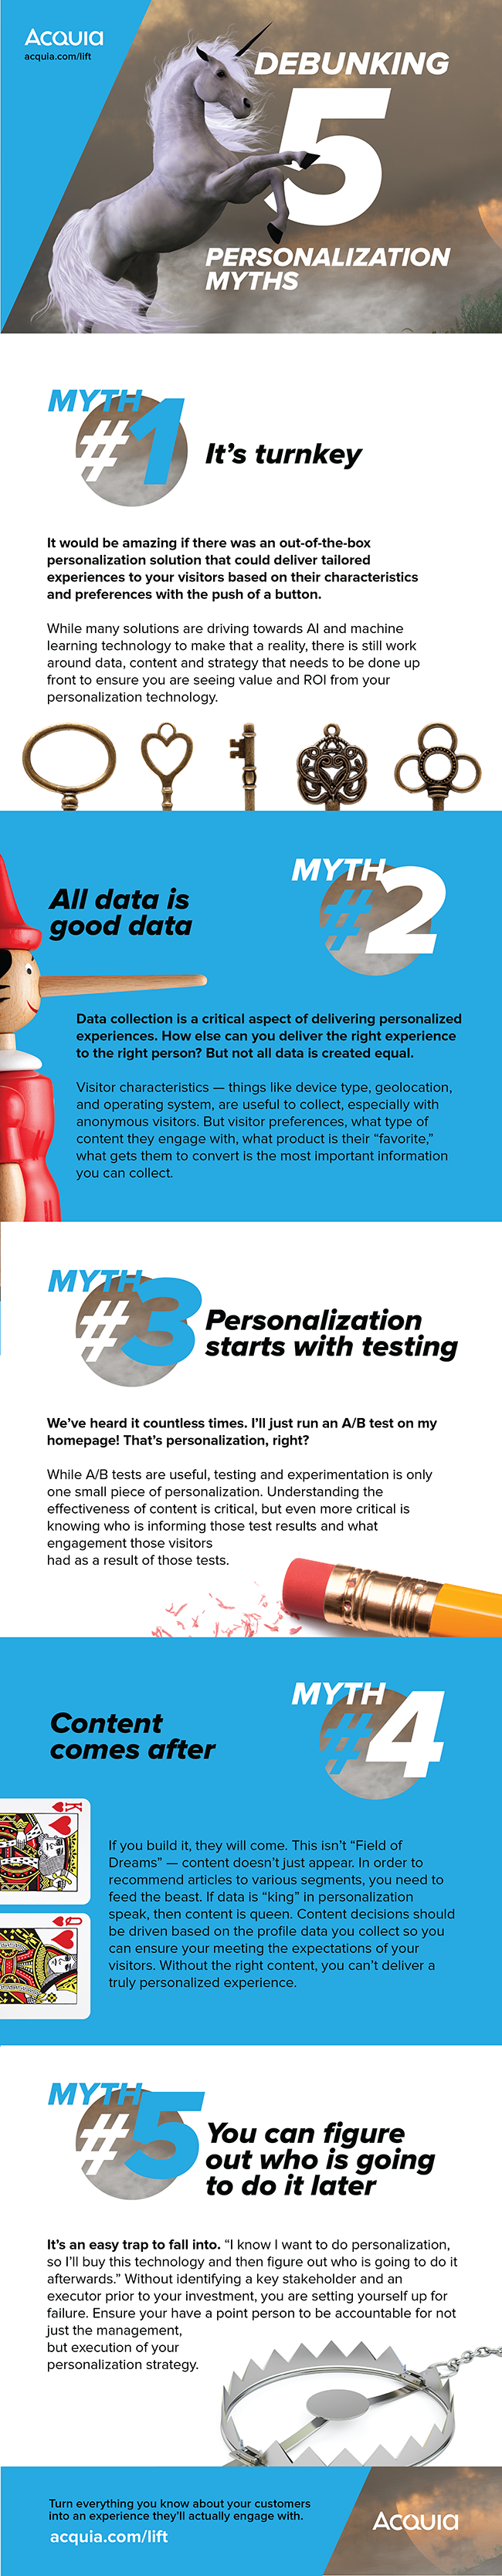 Five myths of personalization